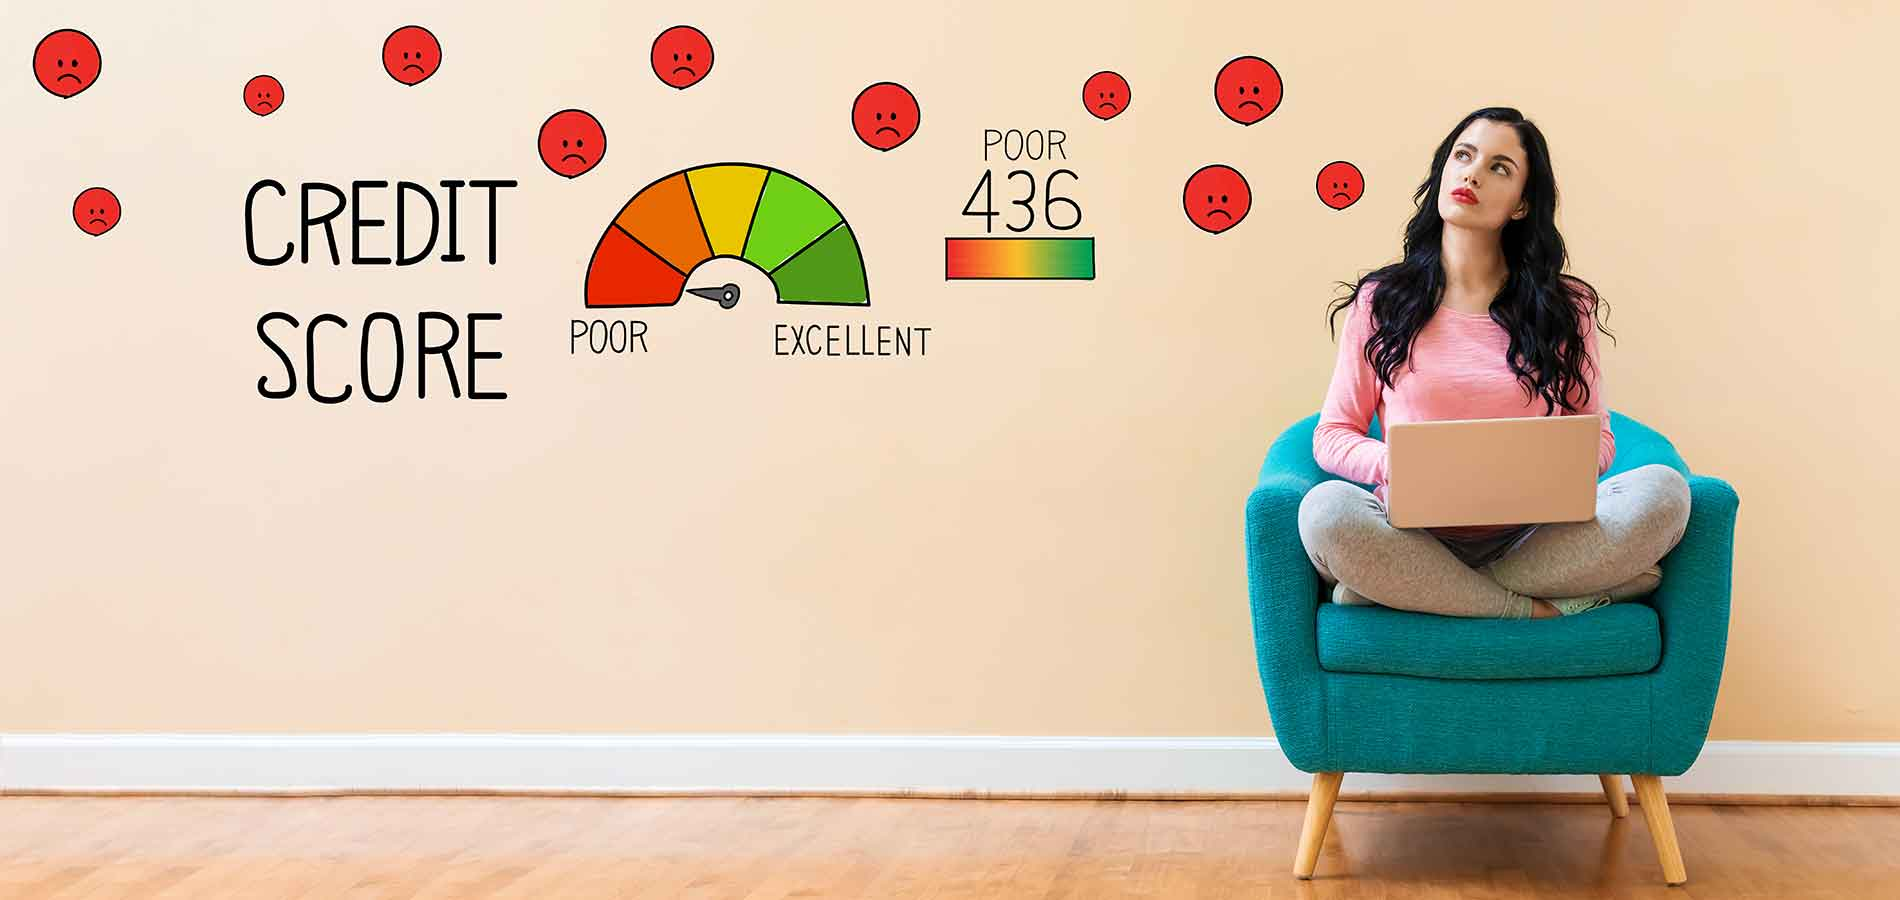 Can a Loan Application Affect My Credit Score?